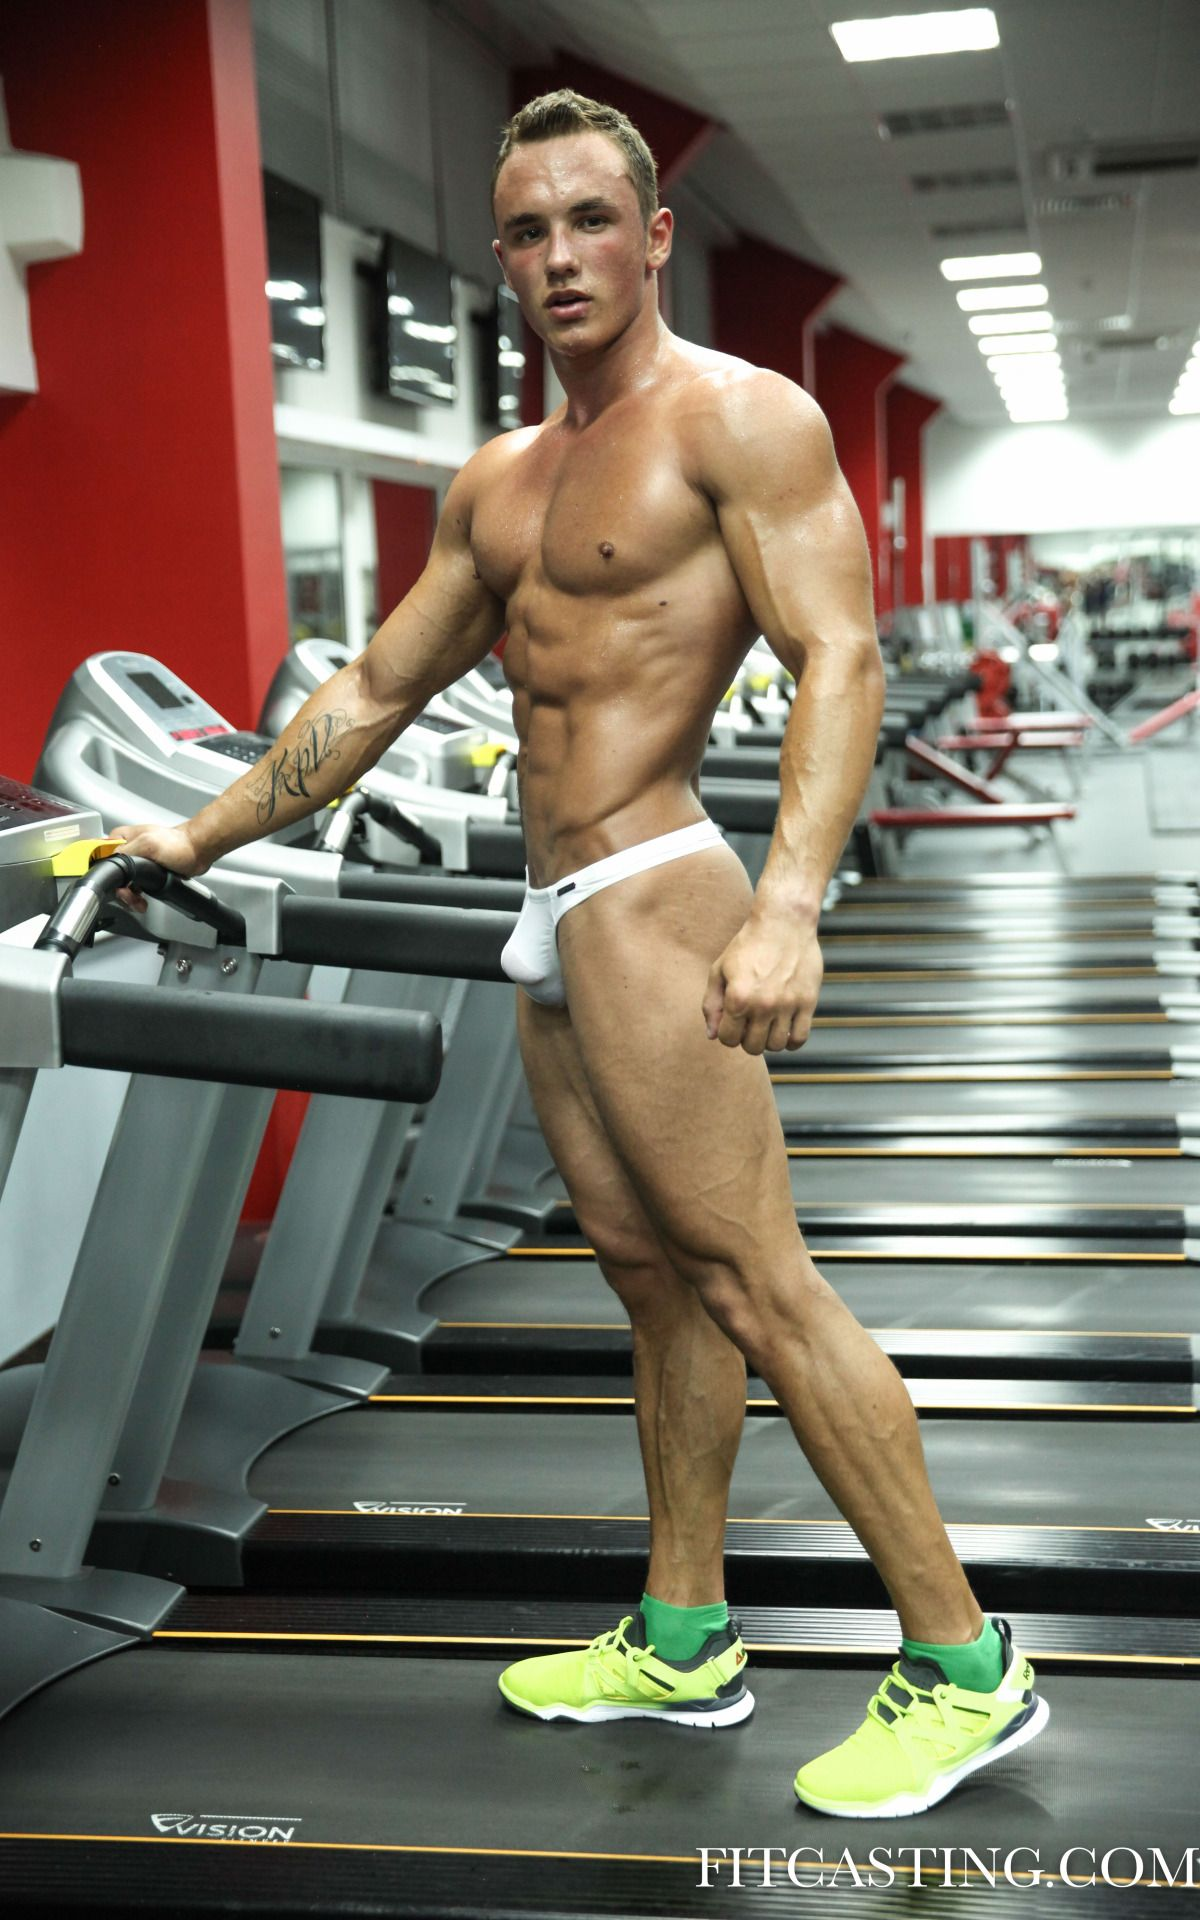 217bfb79a239 Gym Body, Athletic Men, Gym Wear, Muscle Boy, Muscle Fitness, Interior.  Visit. May 2019